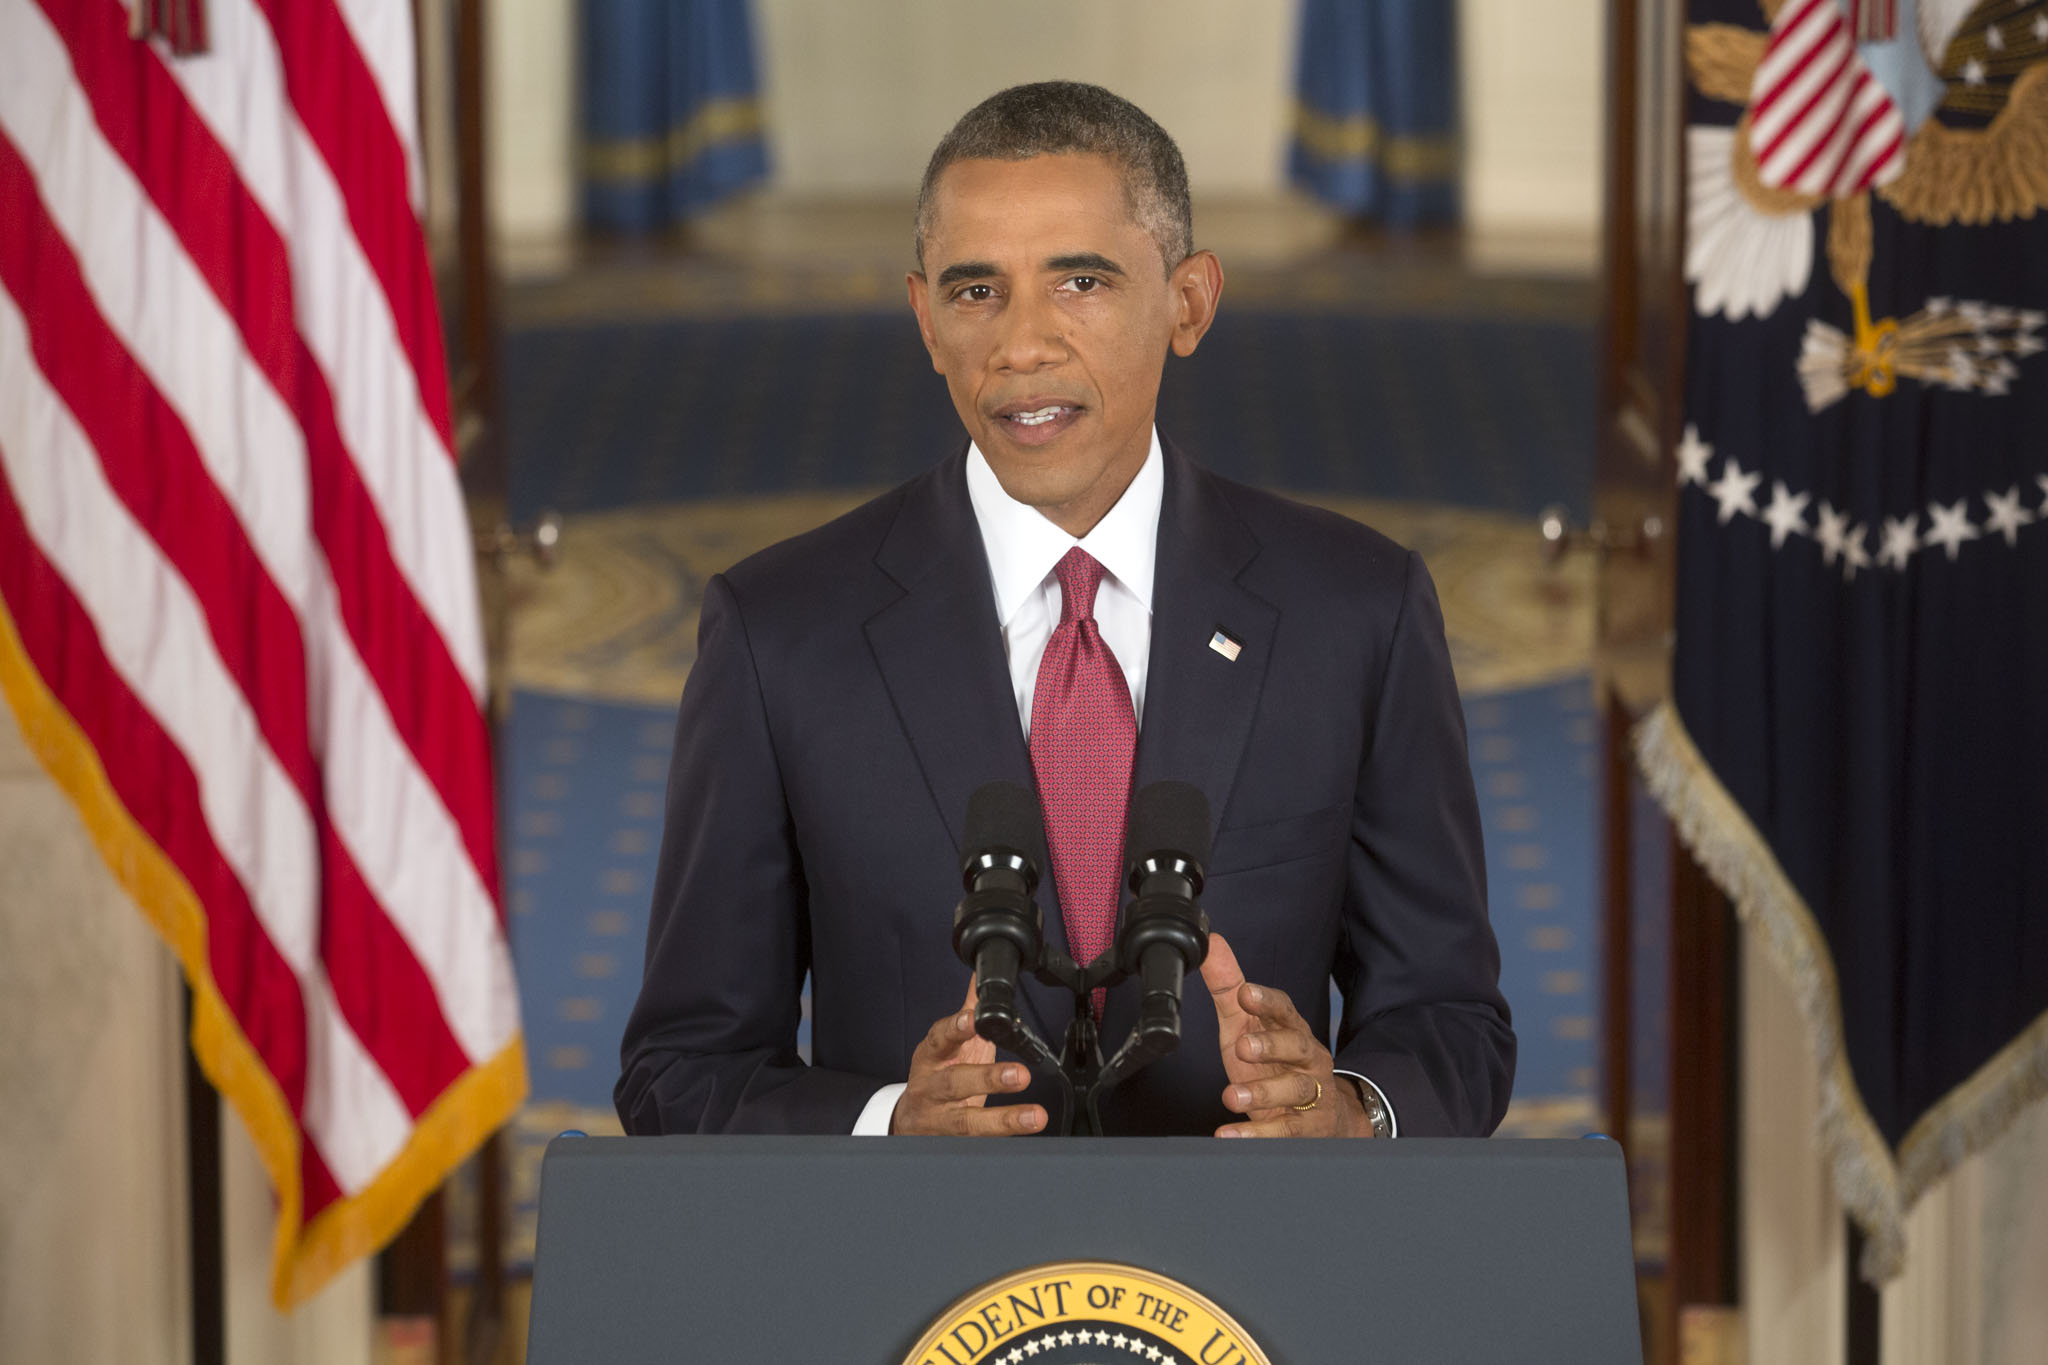 Barack Obama standing at a podium, flanked by American flags on either side.